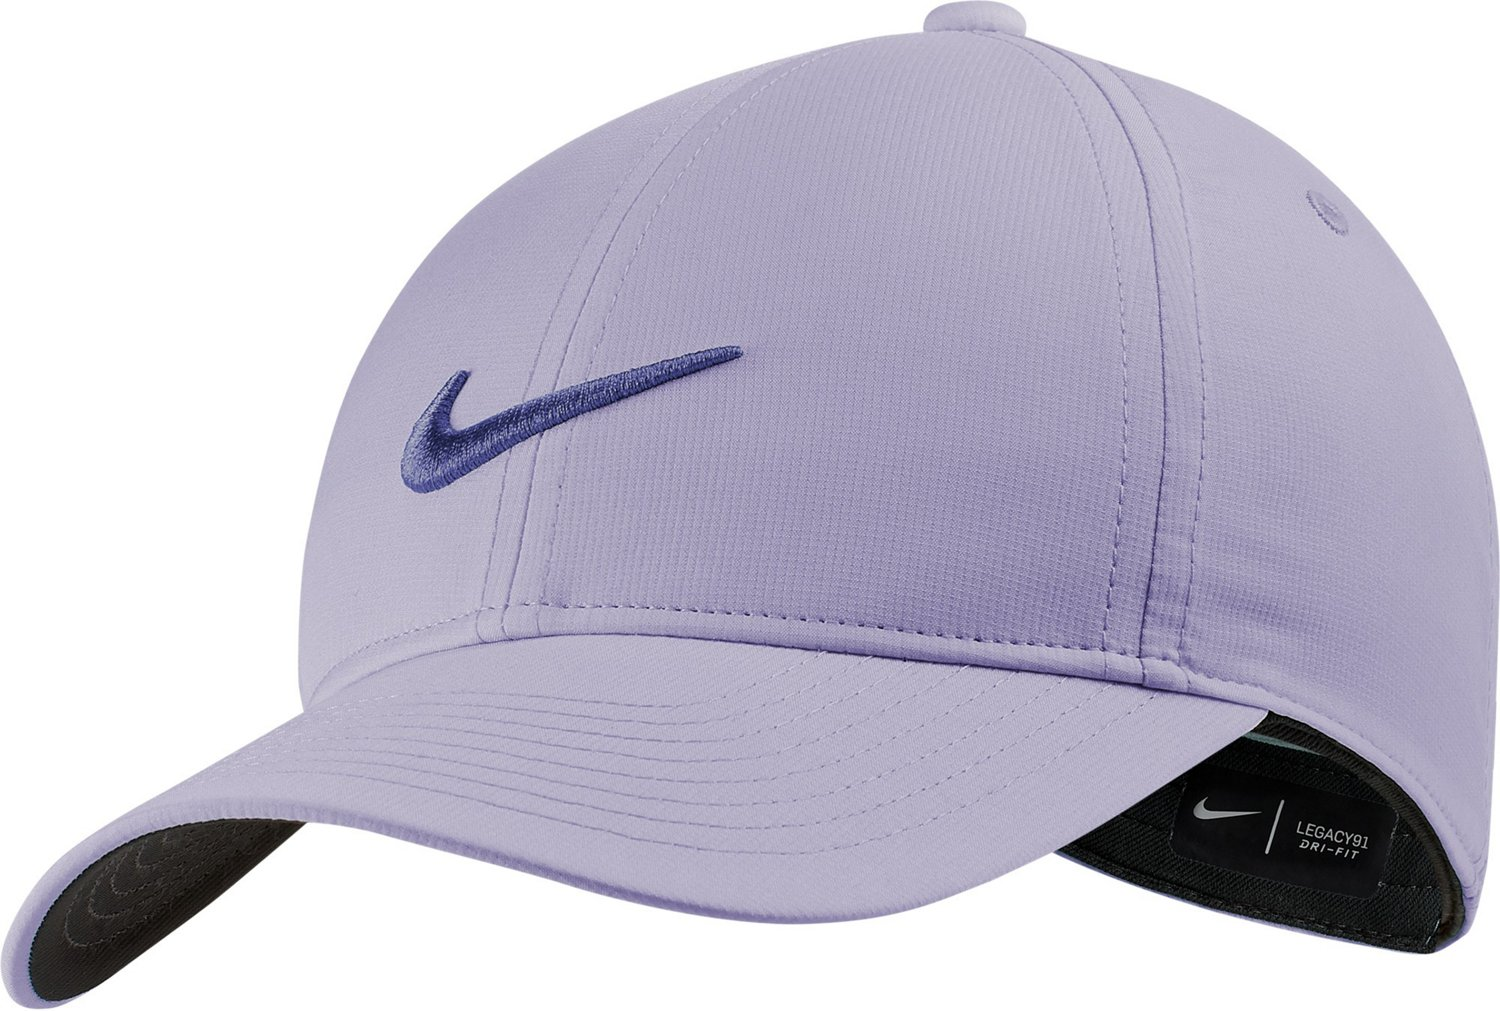 cheap for discount 11427 f37d1 Nike Women s Legacy91 Golf Cap   Academy